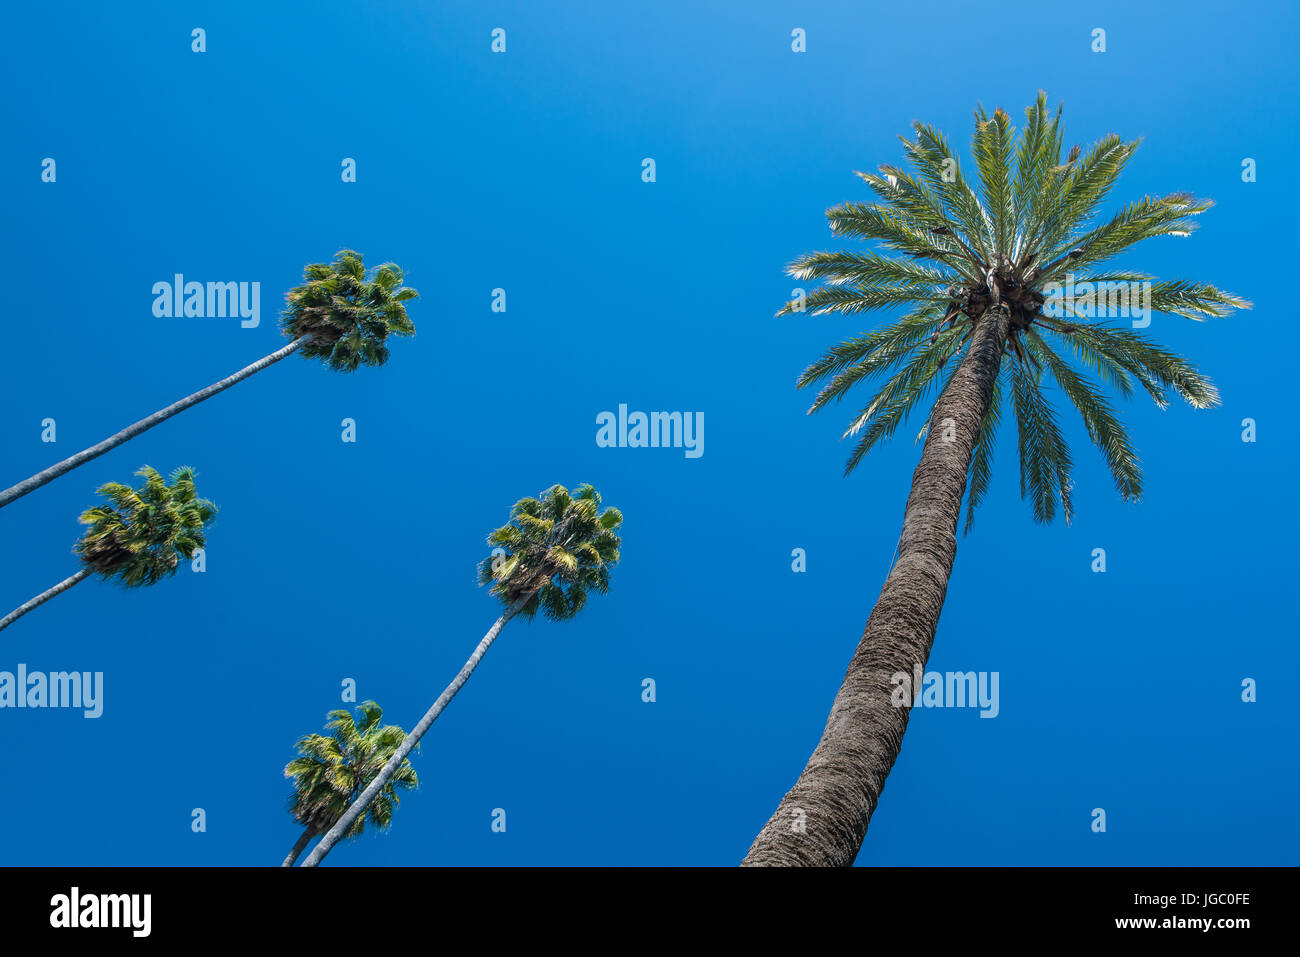 Palm trees isolated against a deep blue sky within the grounds of the Alcazar, Seville, Andalucia, Spain. Stock Photo